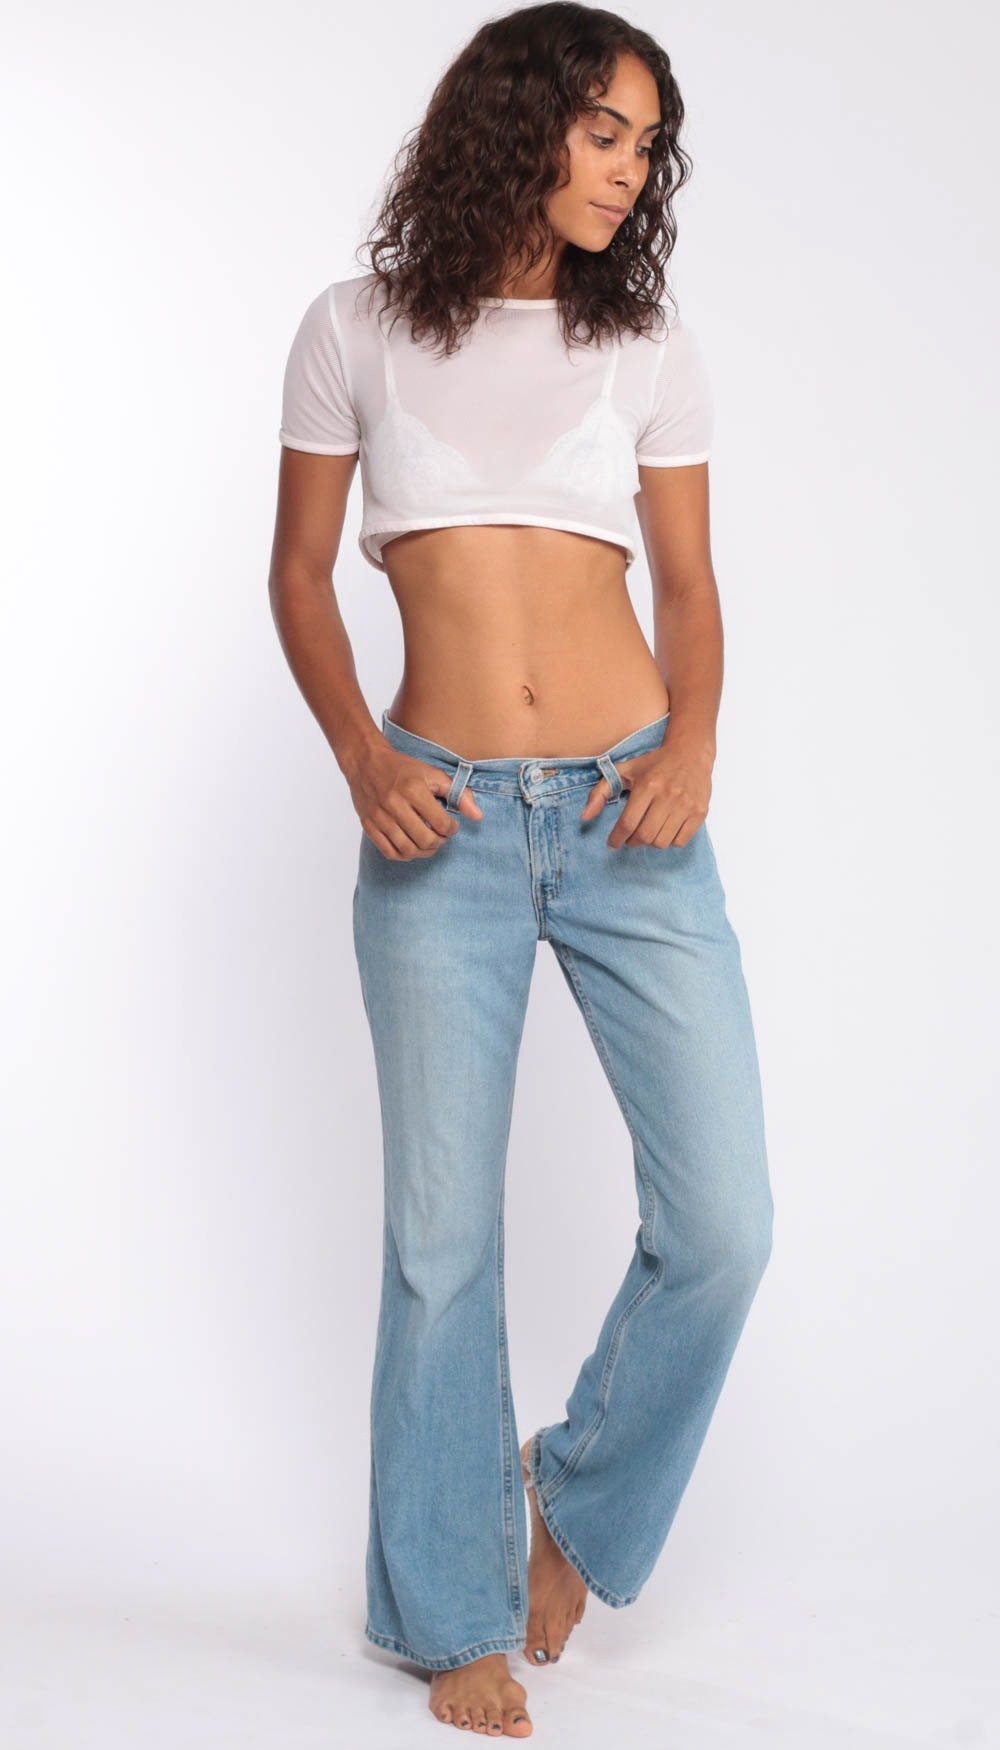 569f8544 90s Flared LEVIS Jeans -- 00s Jeans Levi 514 Low Rise Bell Bottoms ...